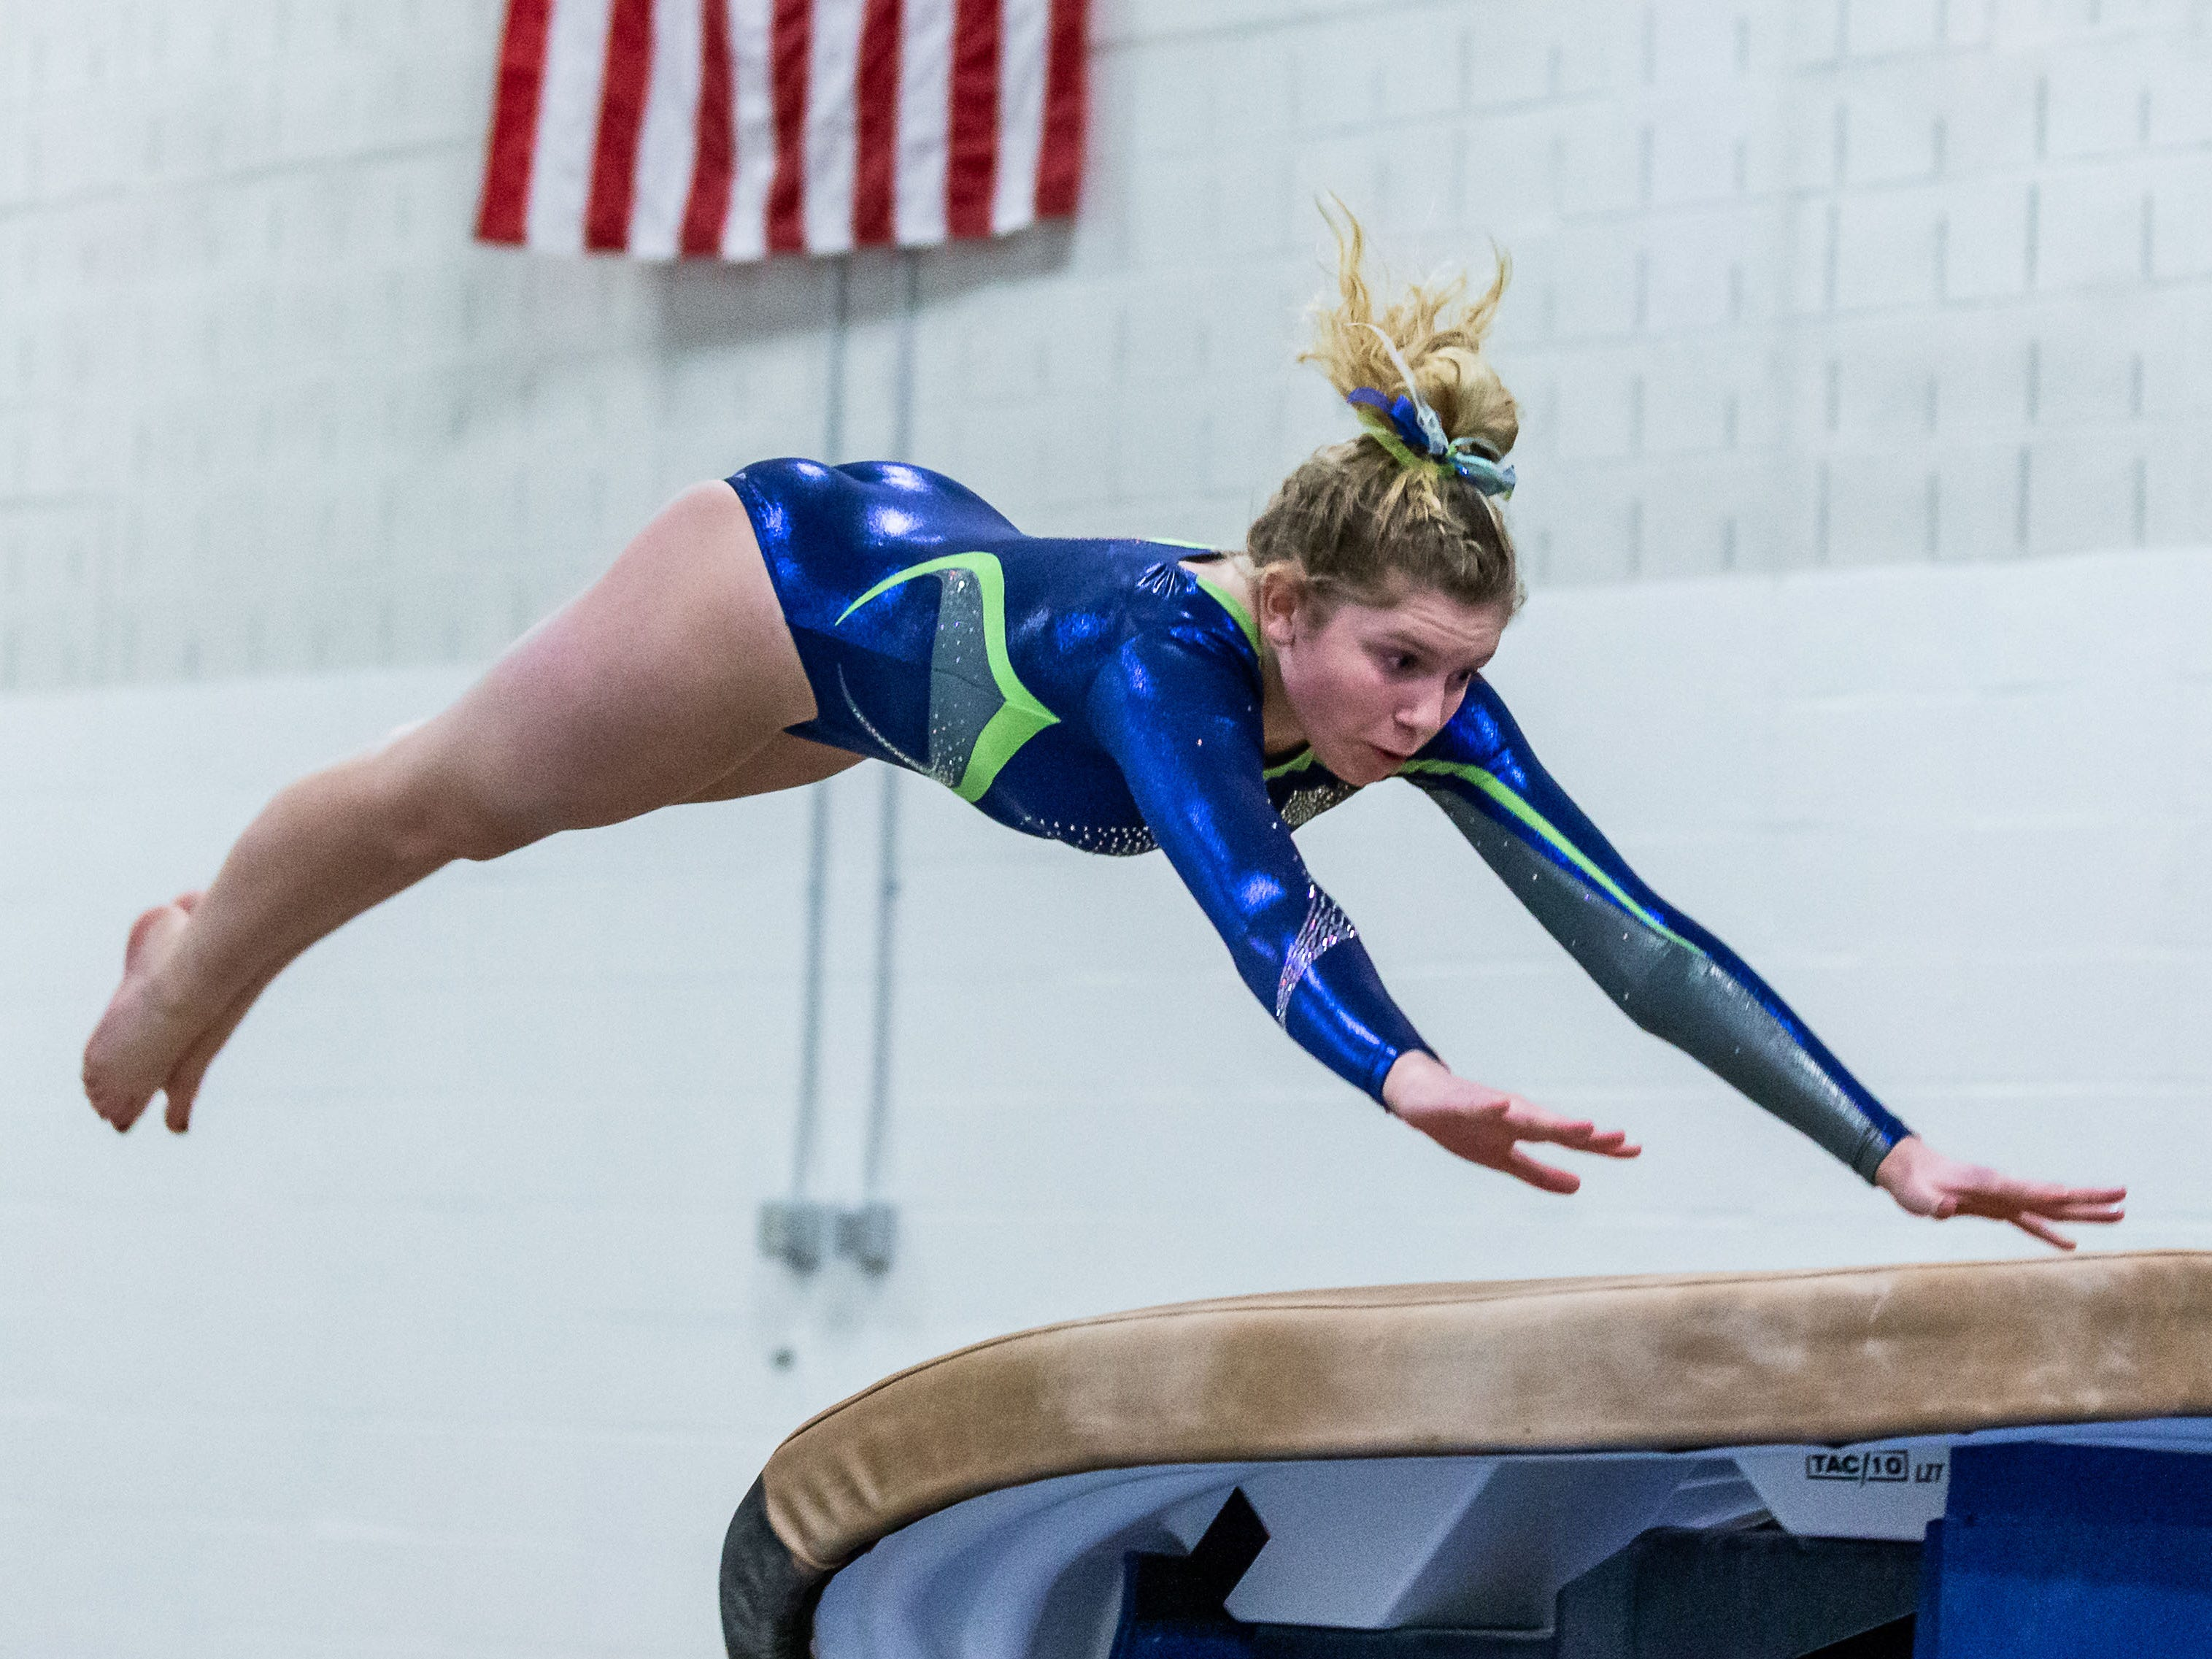 Whitefish Bay gymnast Erin Timms competes on the vault during the meet at Nicolet on Thursday, Jan. 3, 2019.